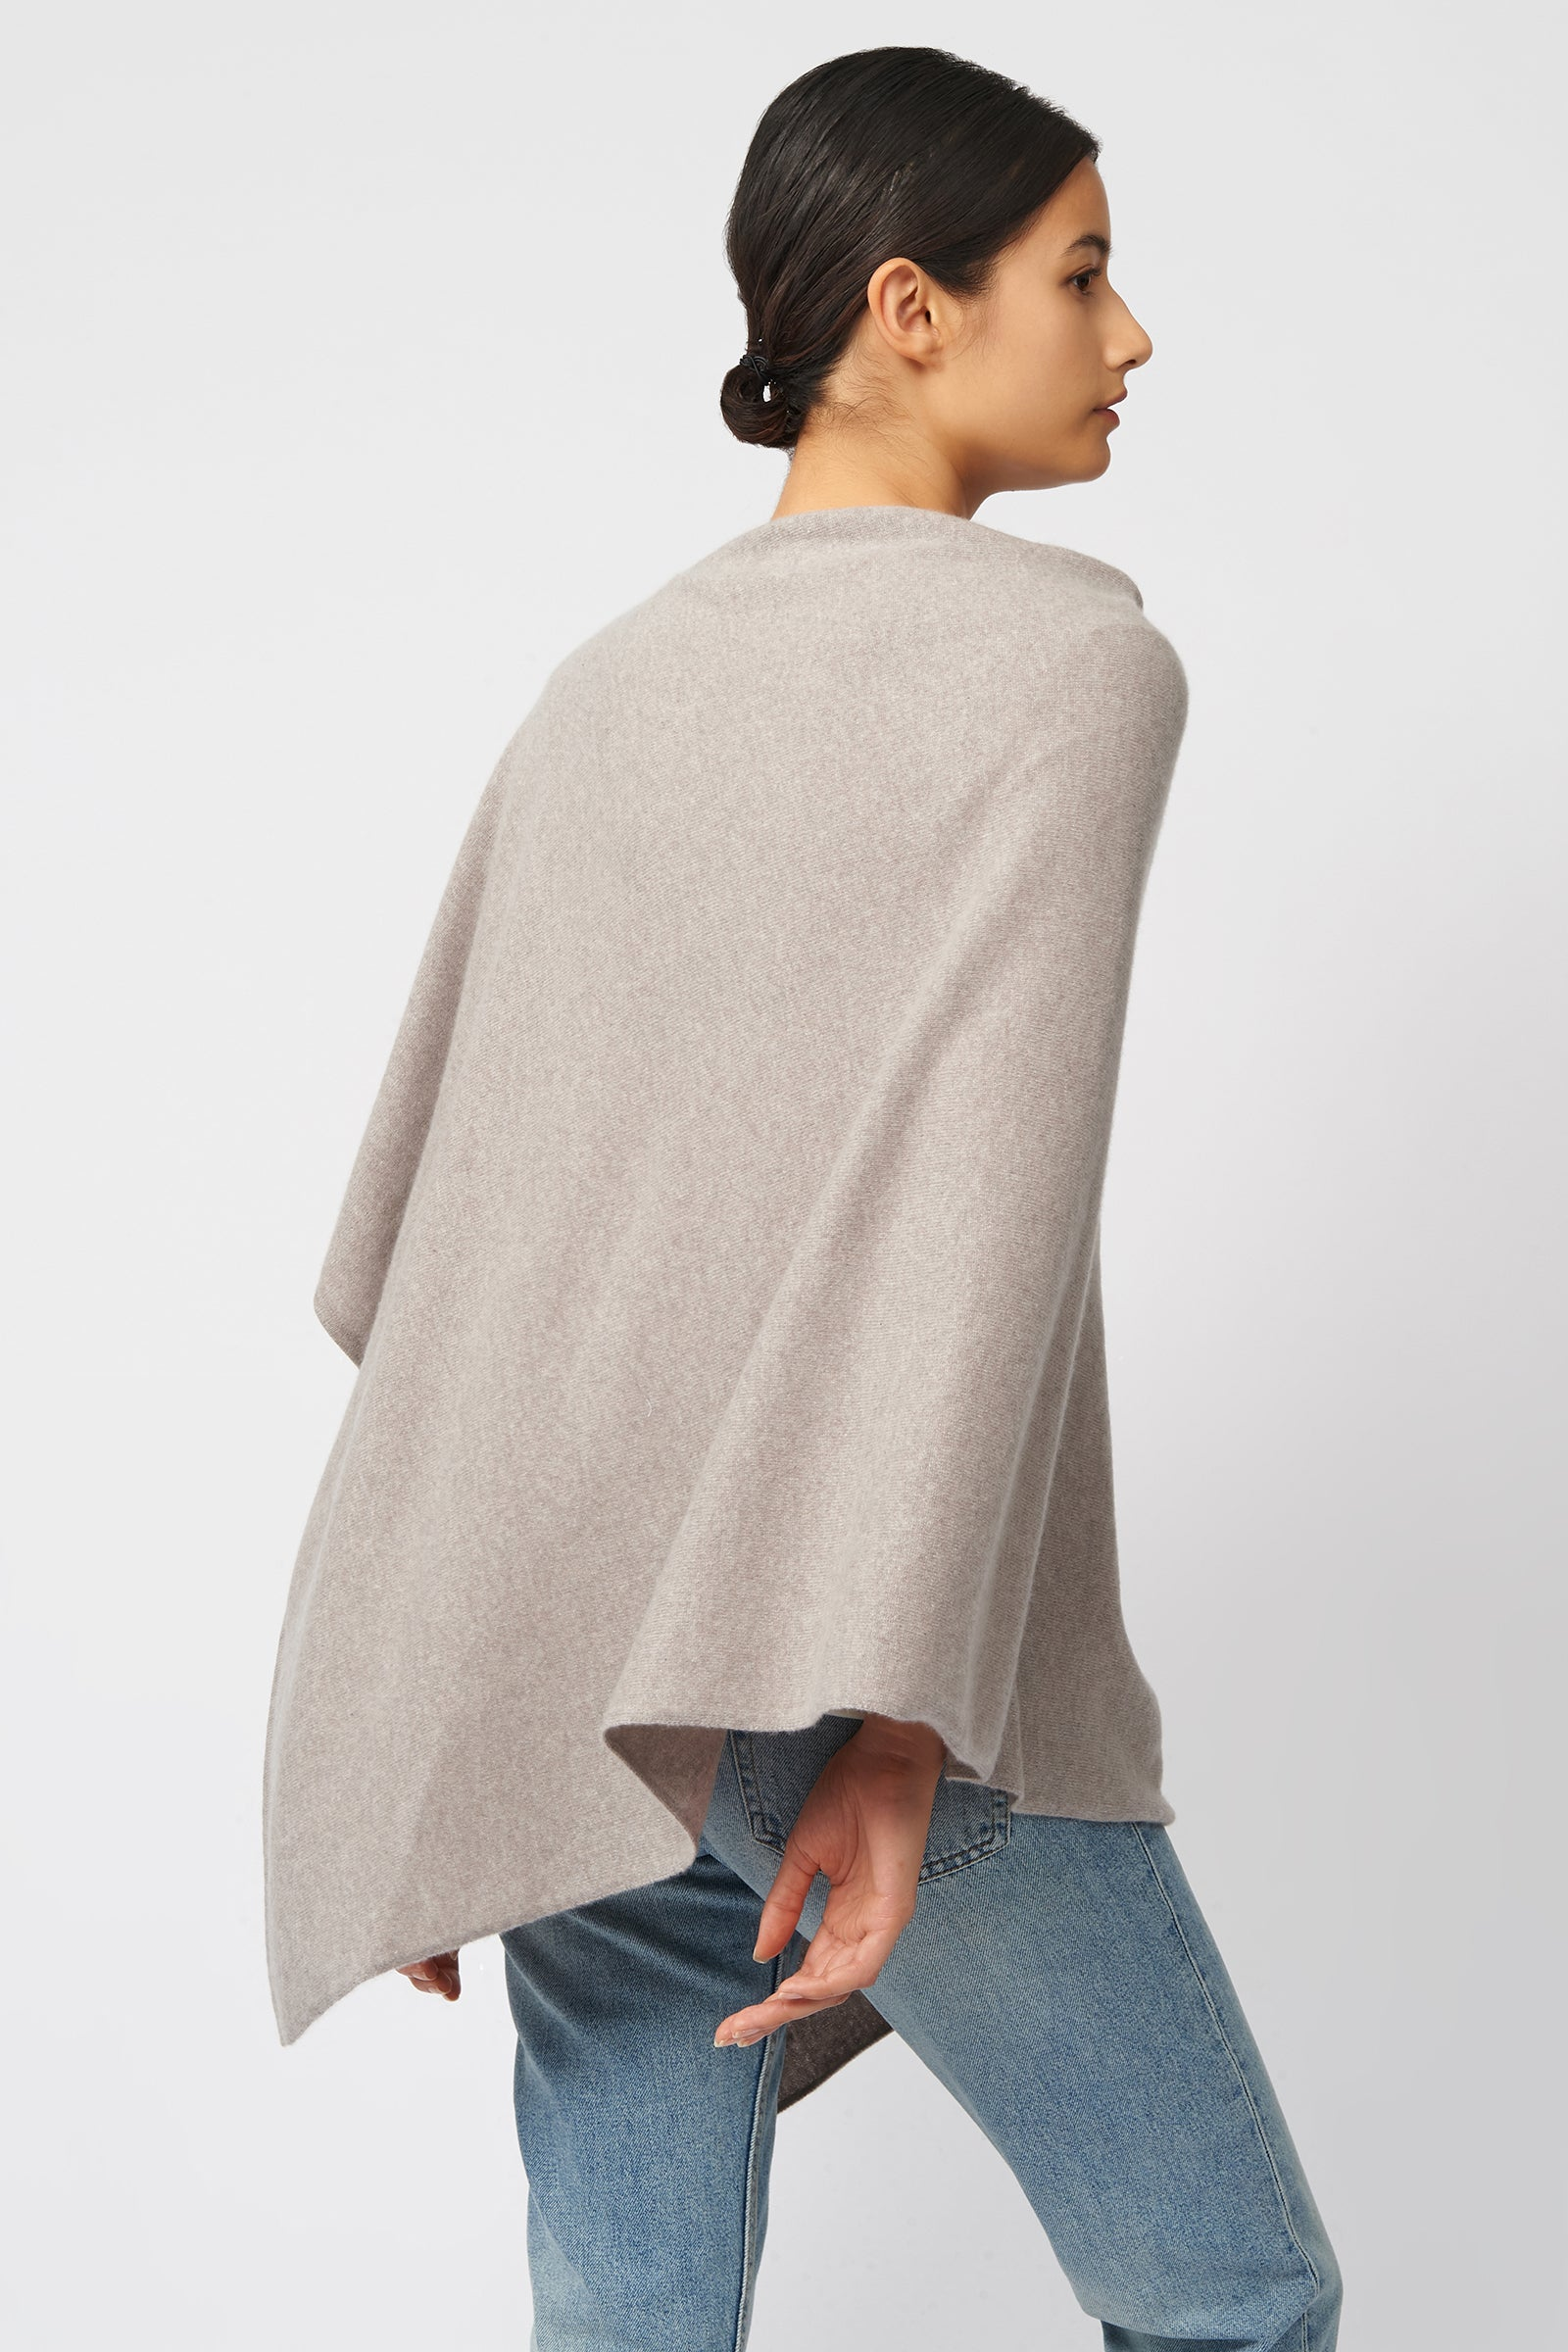 Kal Rieman Cashmere Poncho in Drift on Model Front Side View